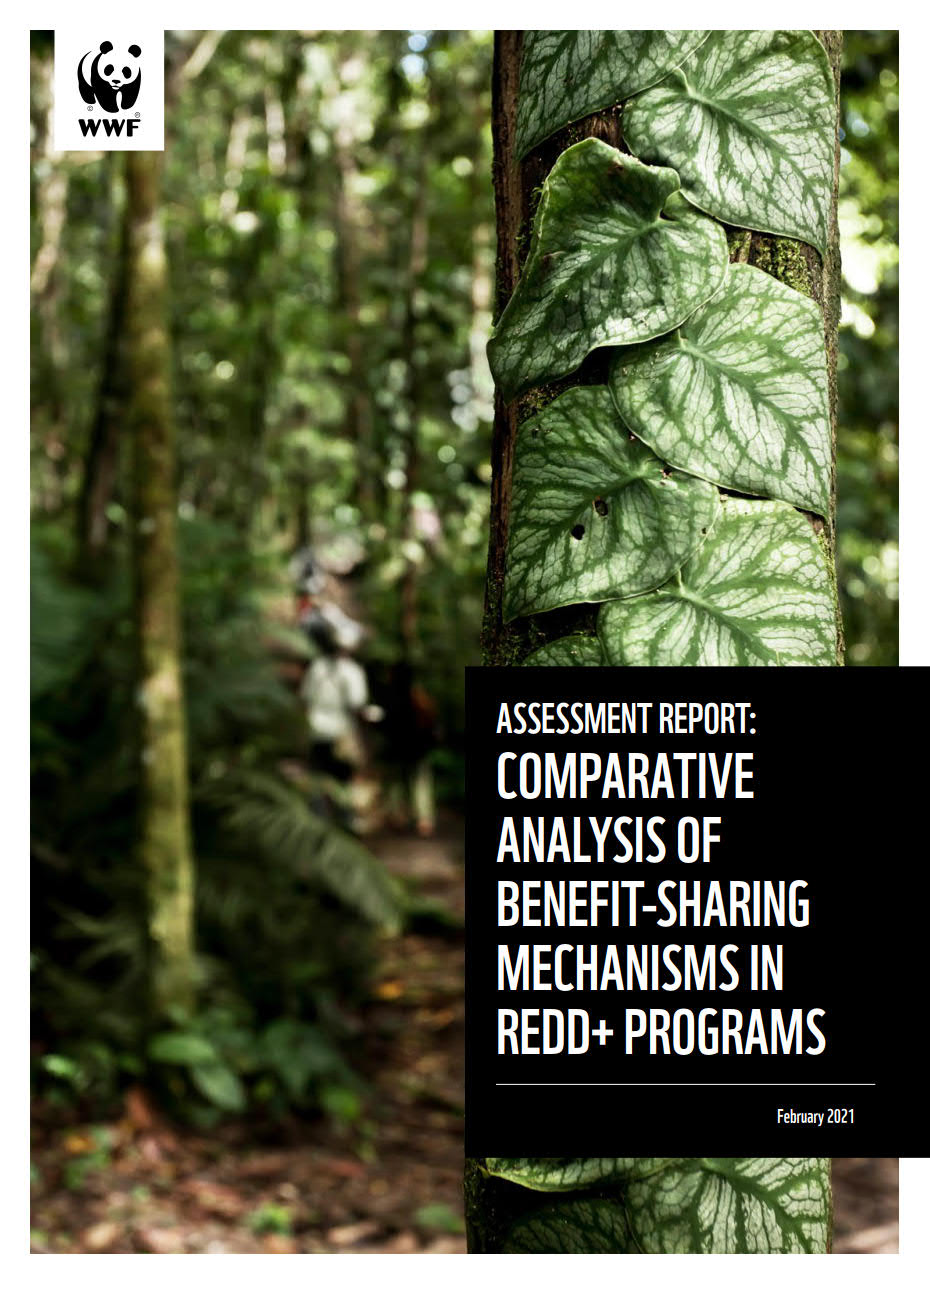 Assessment Report: Comparative Analysis of Benefit-Sharing Mechanisms in REDD+ Programs cover page